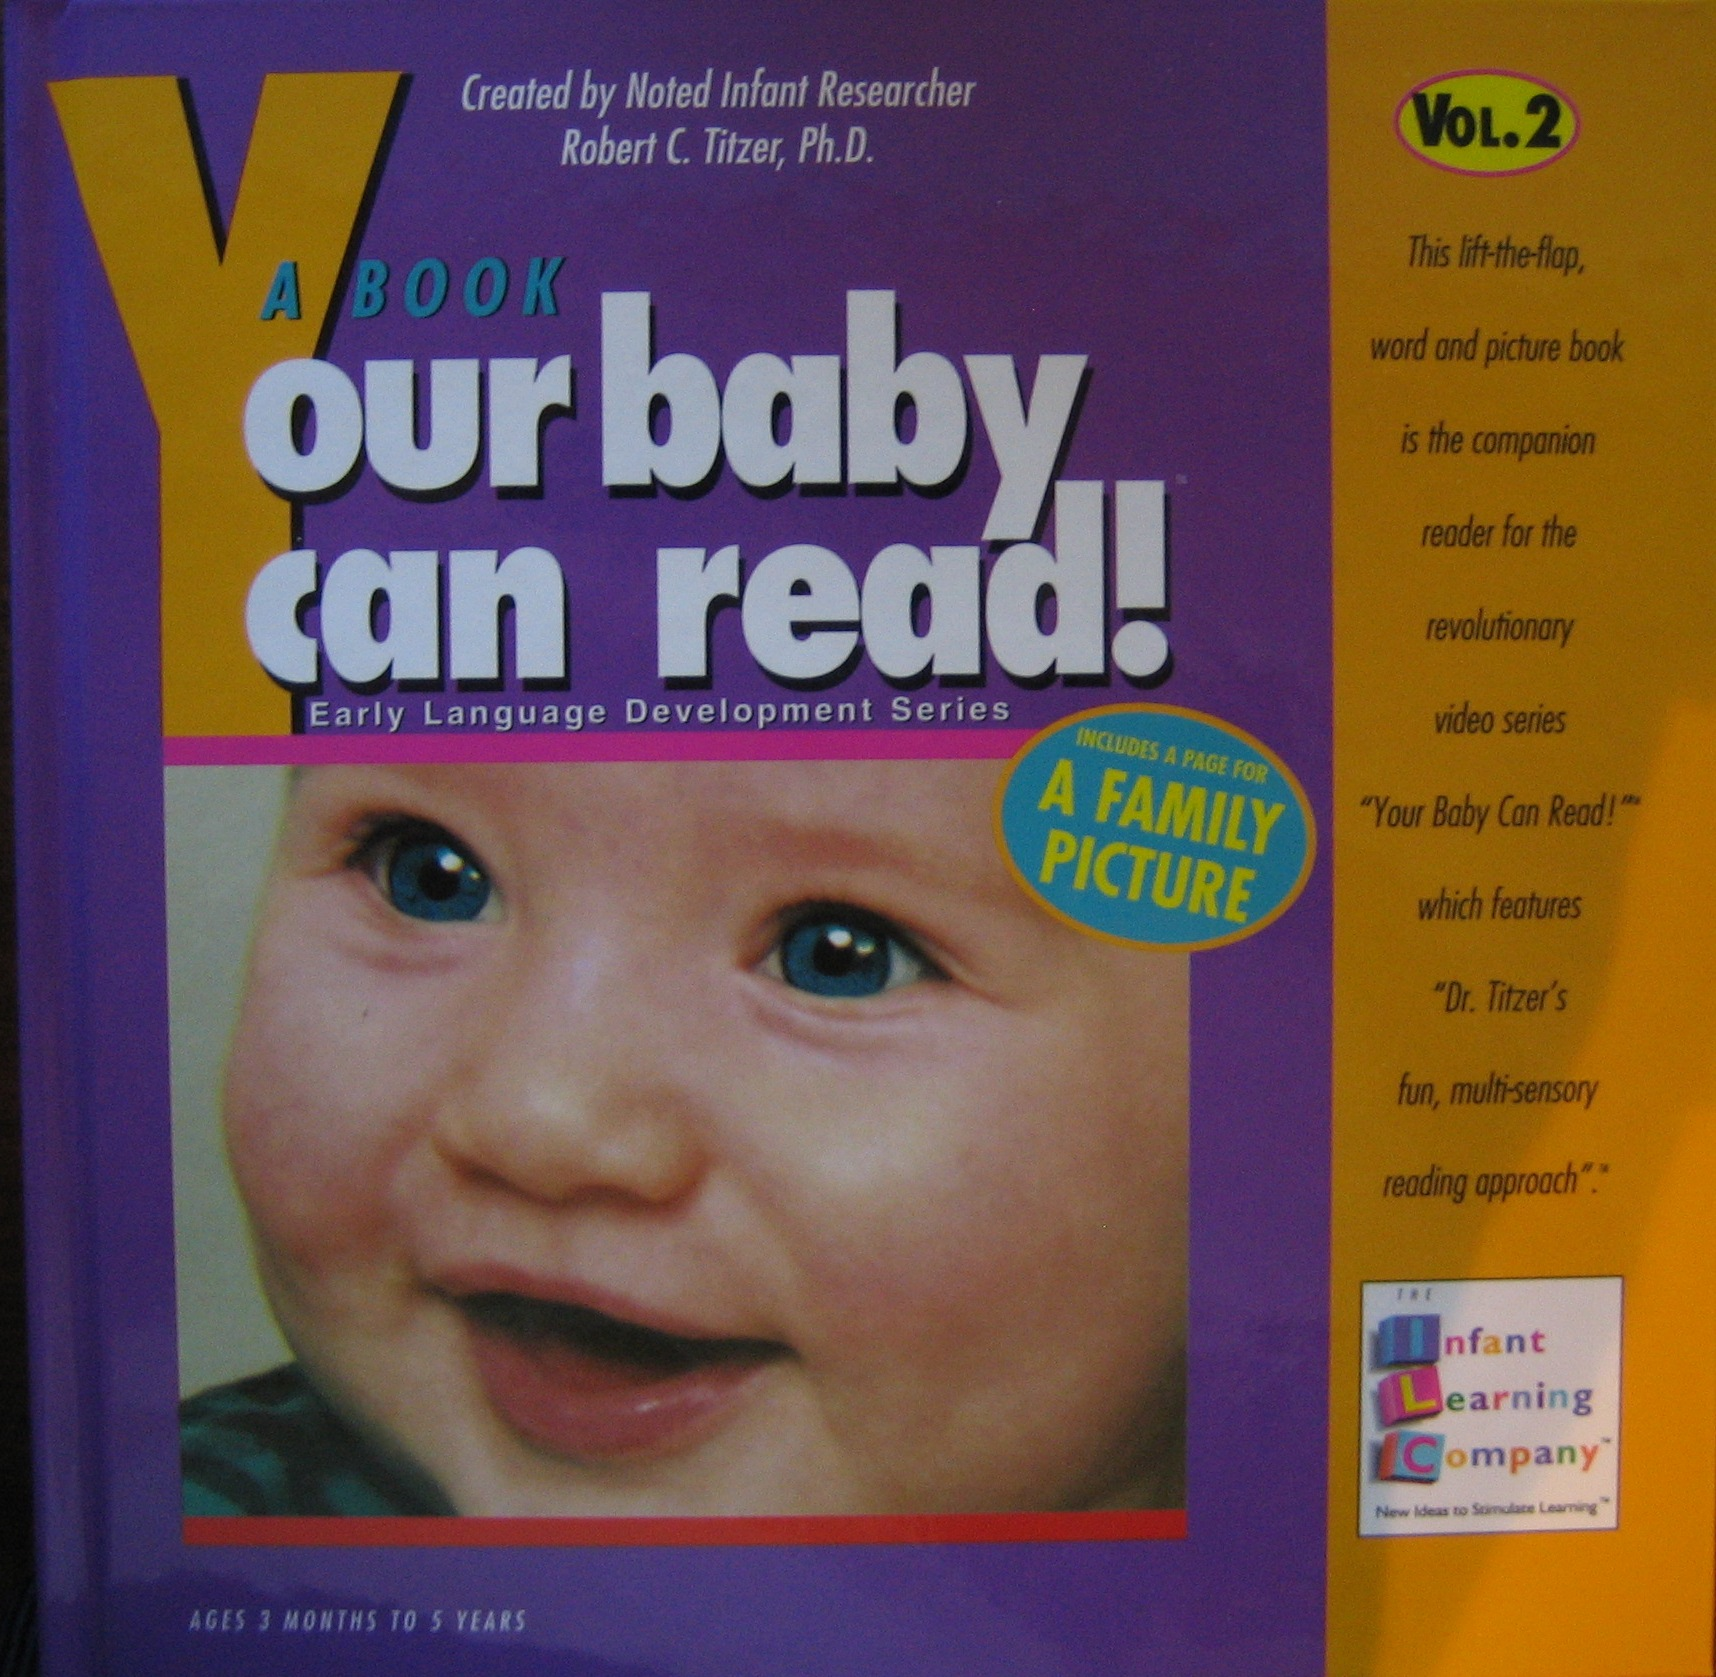 A Book Your Baby Can Read!--Vol. 2